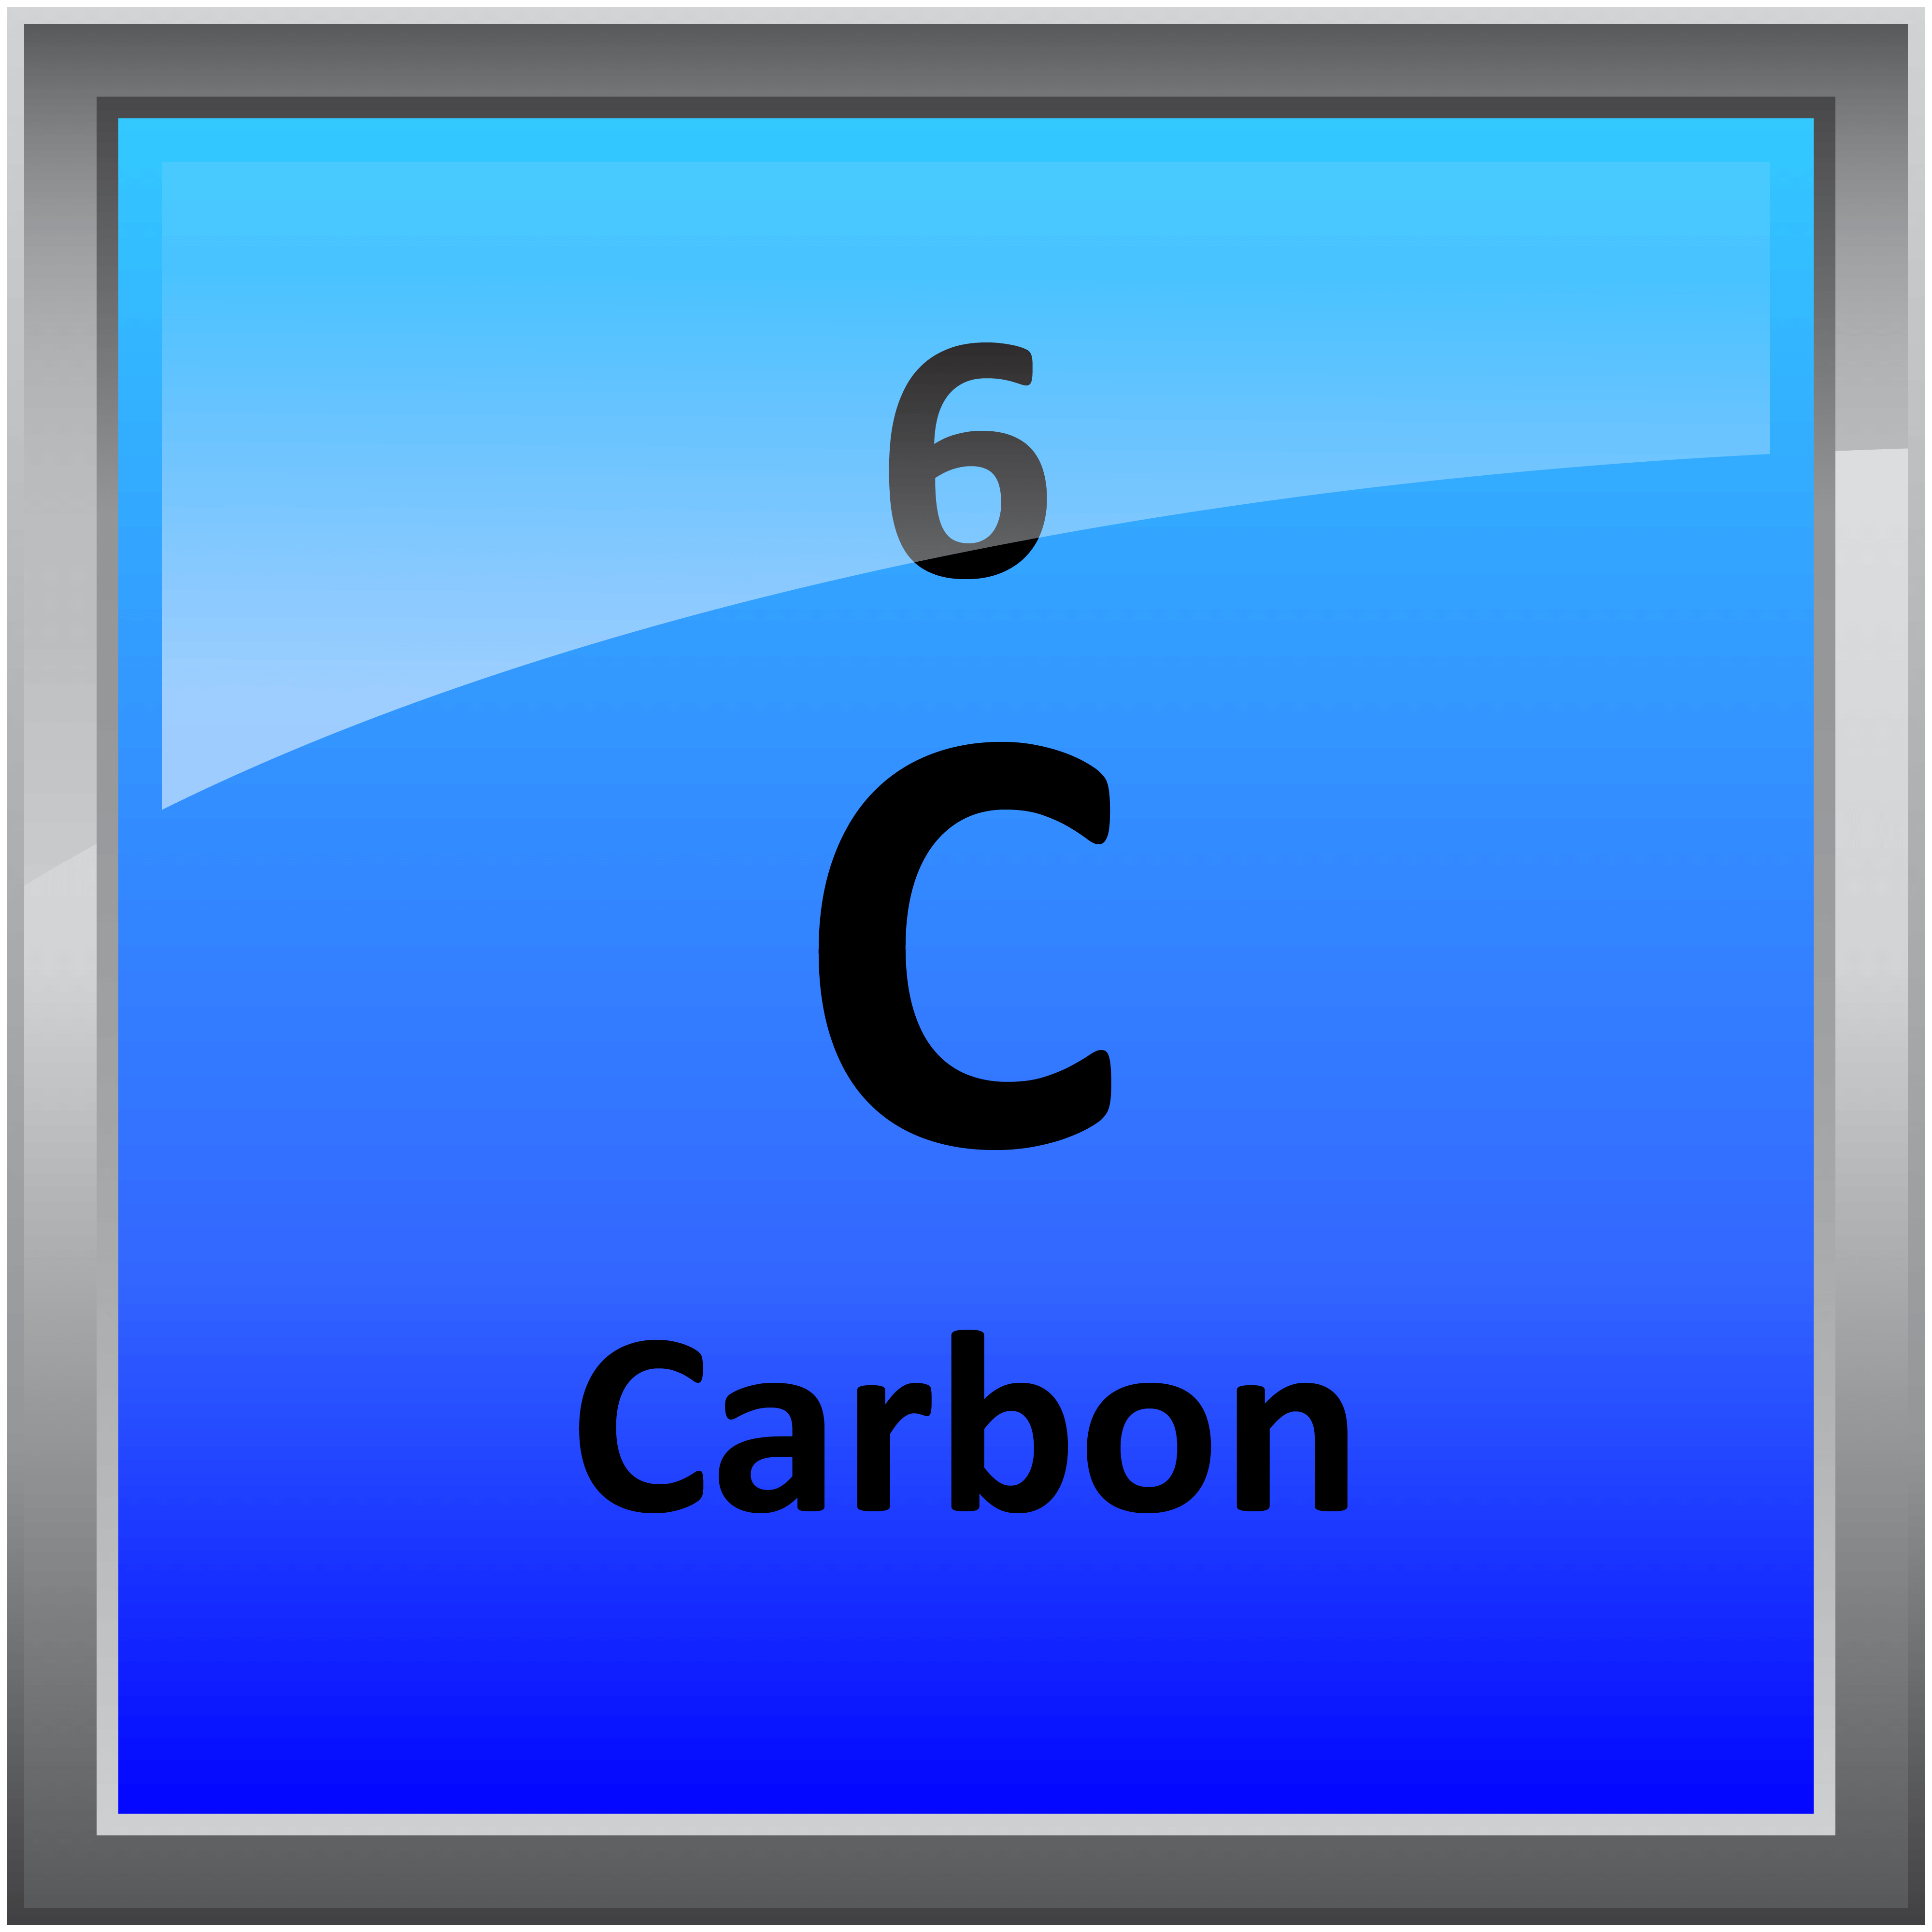 006carbon science notes and projects